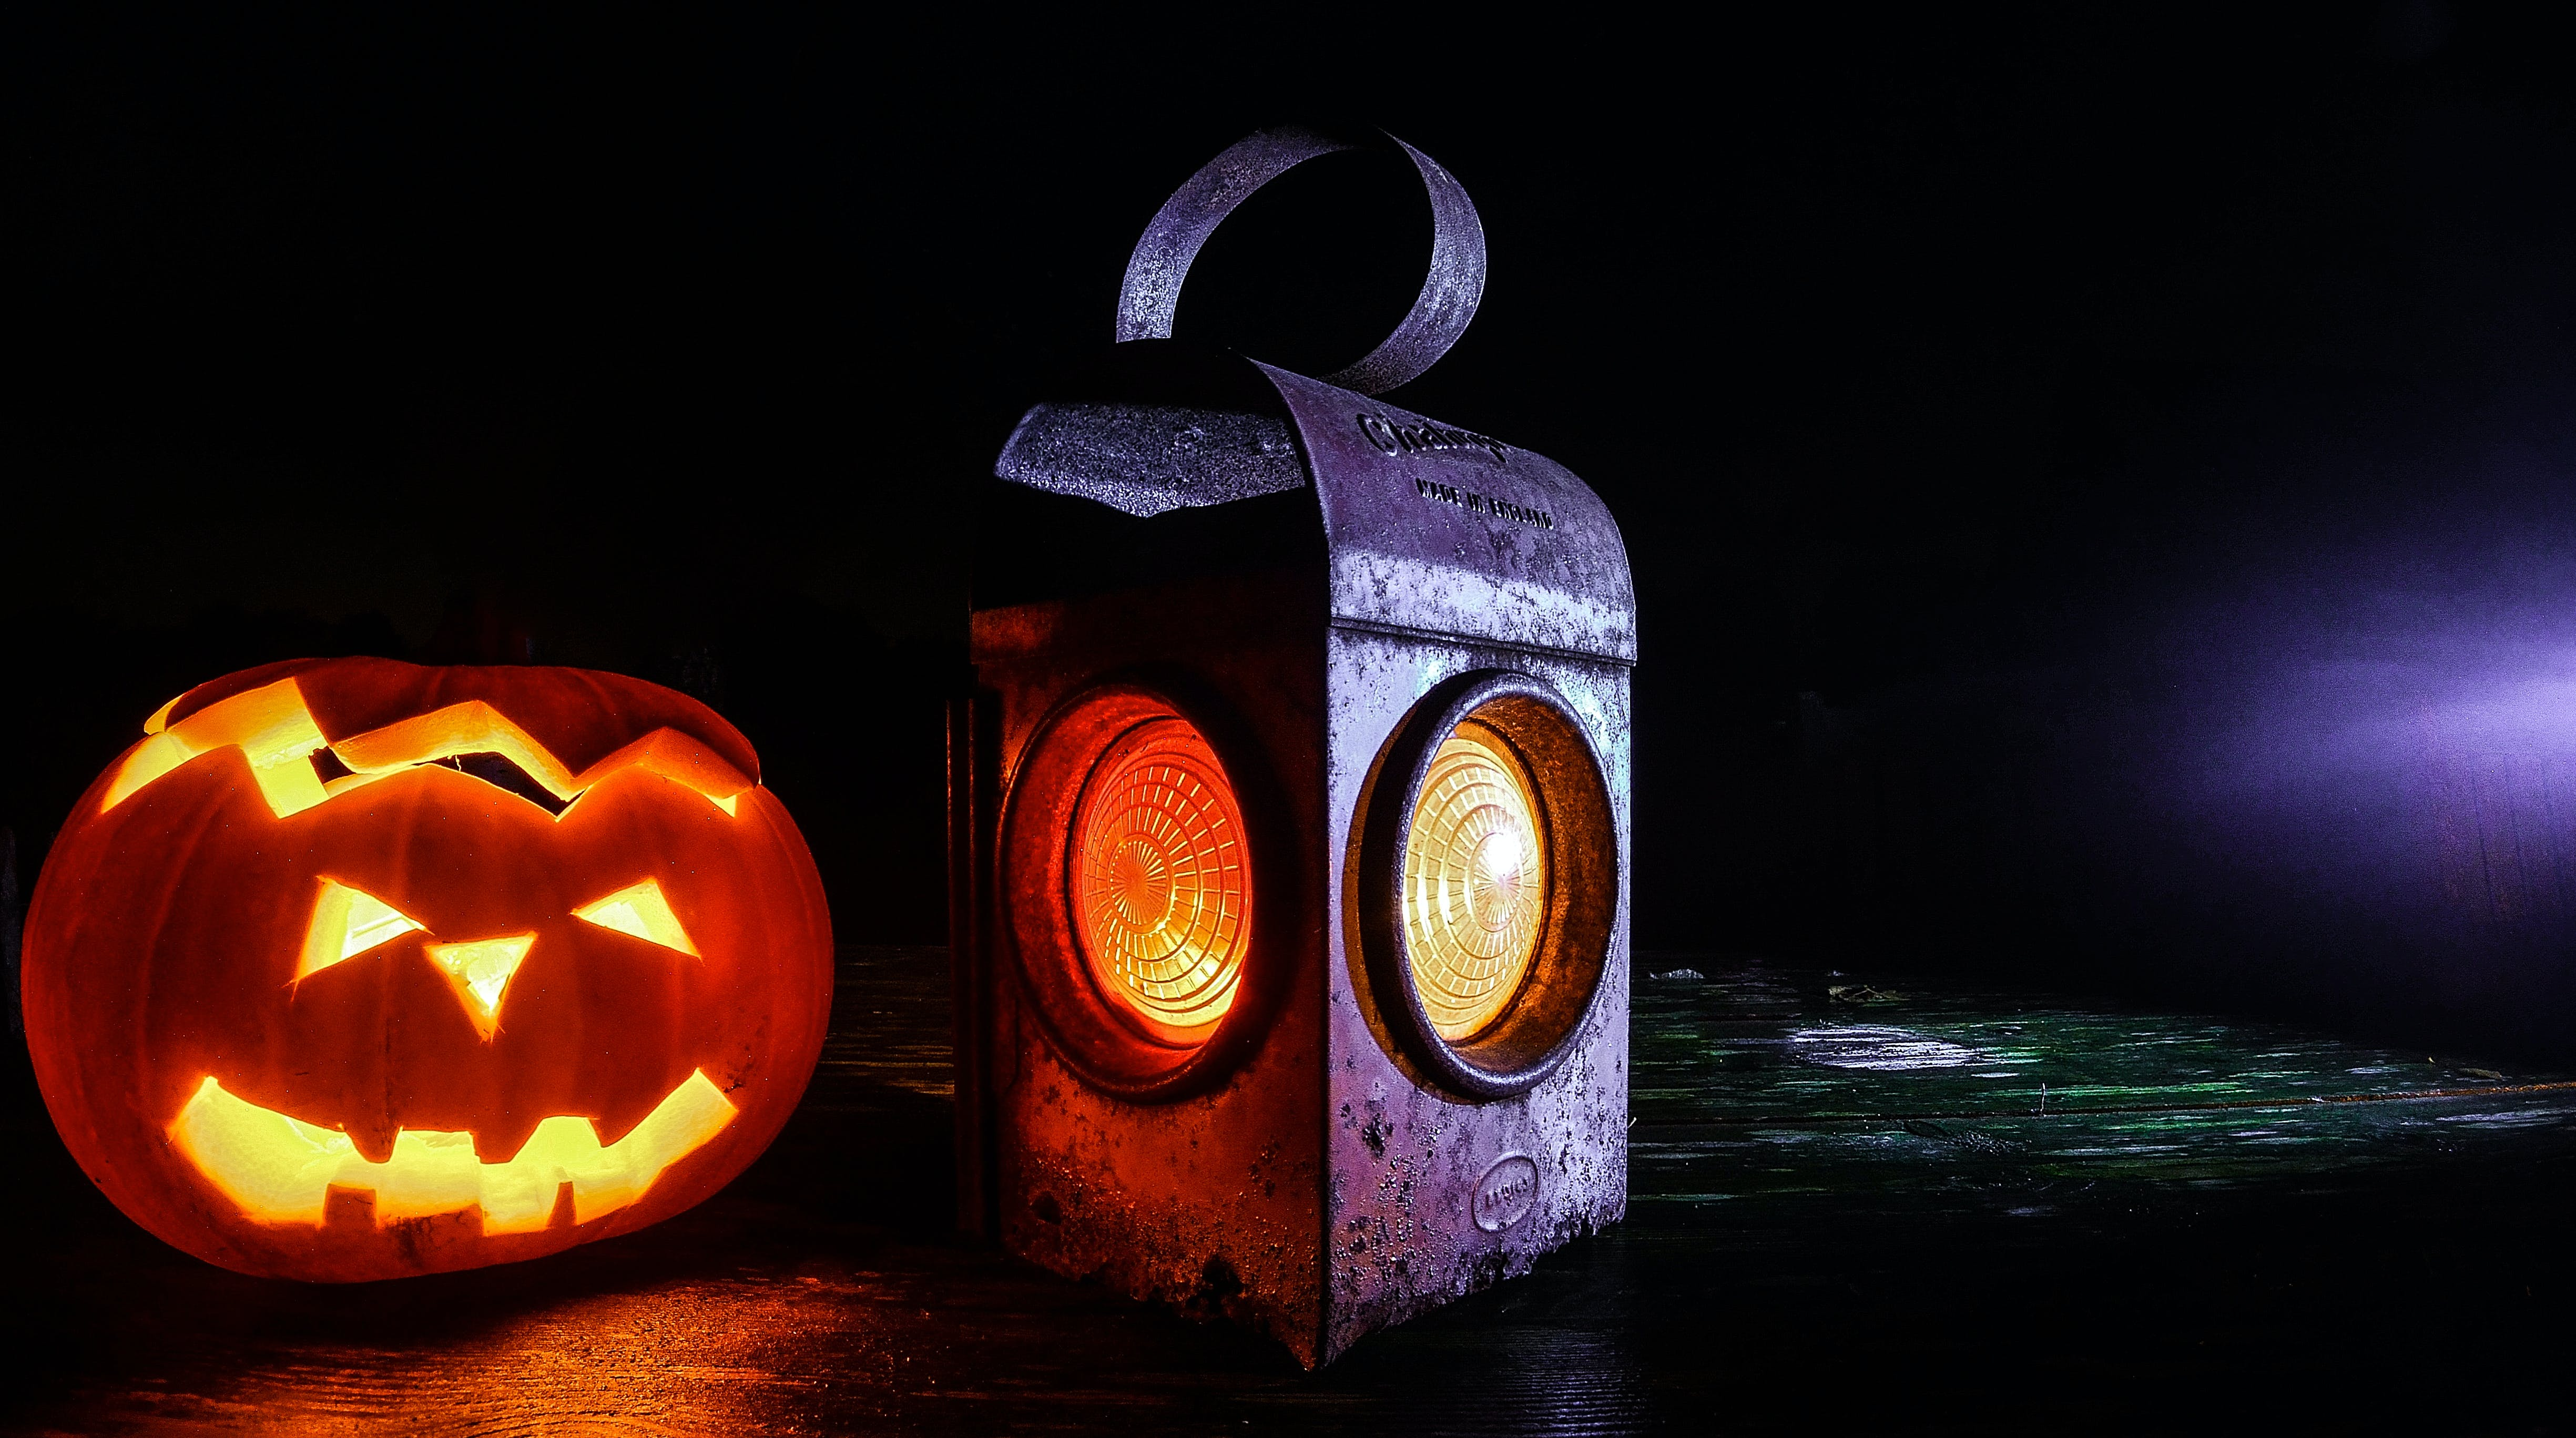 Jack O'lantern Beside Black Lantern